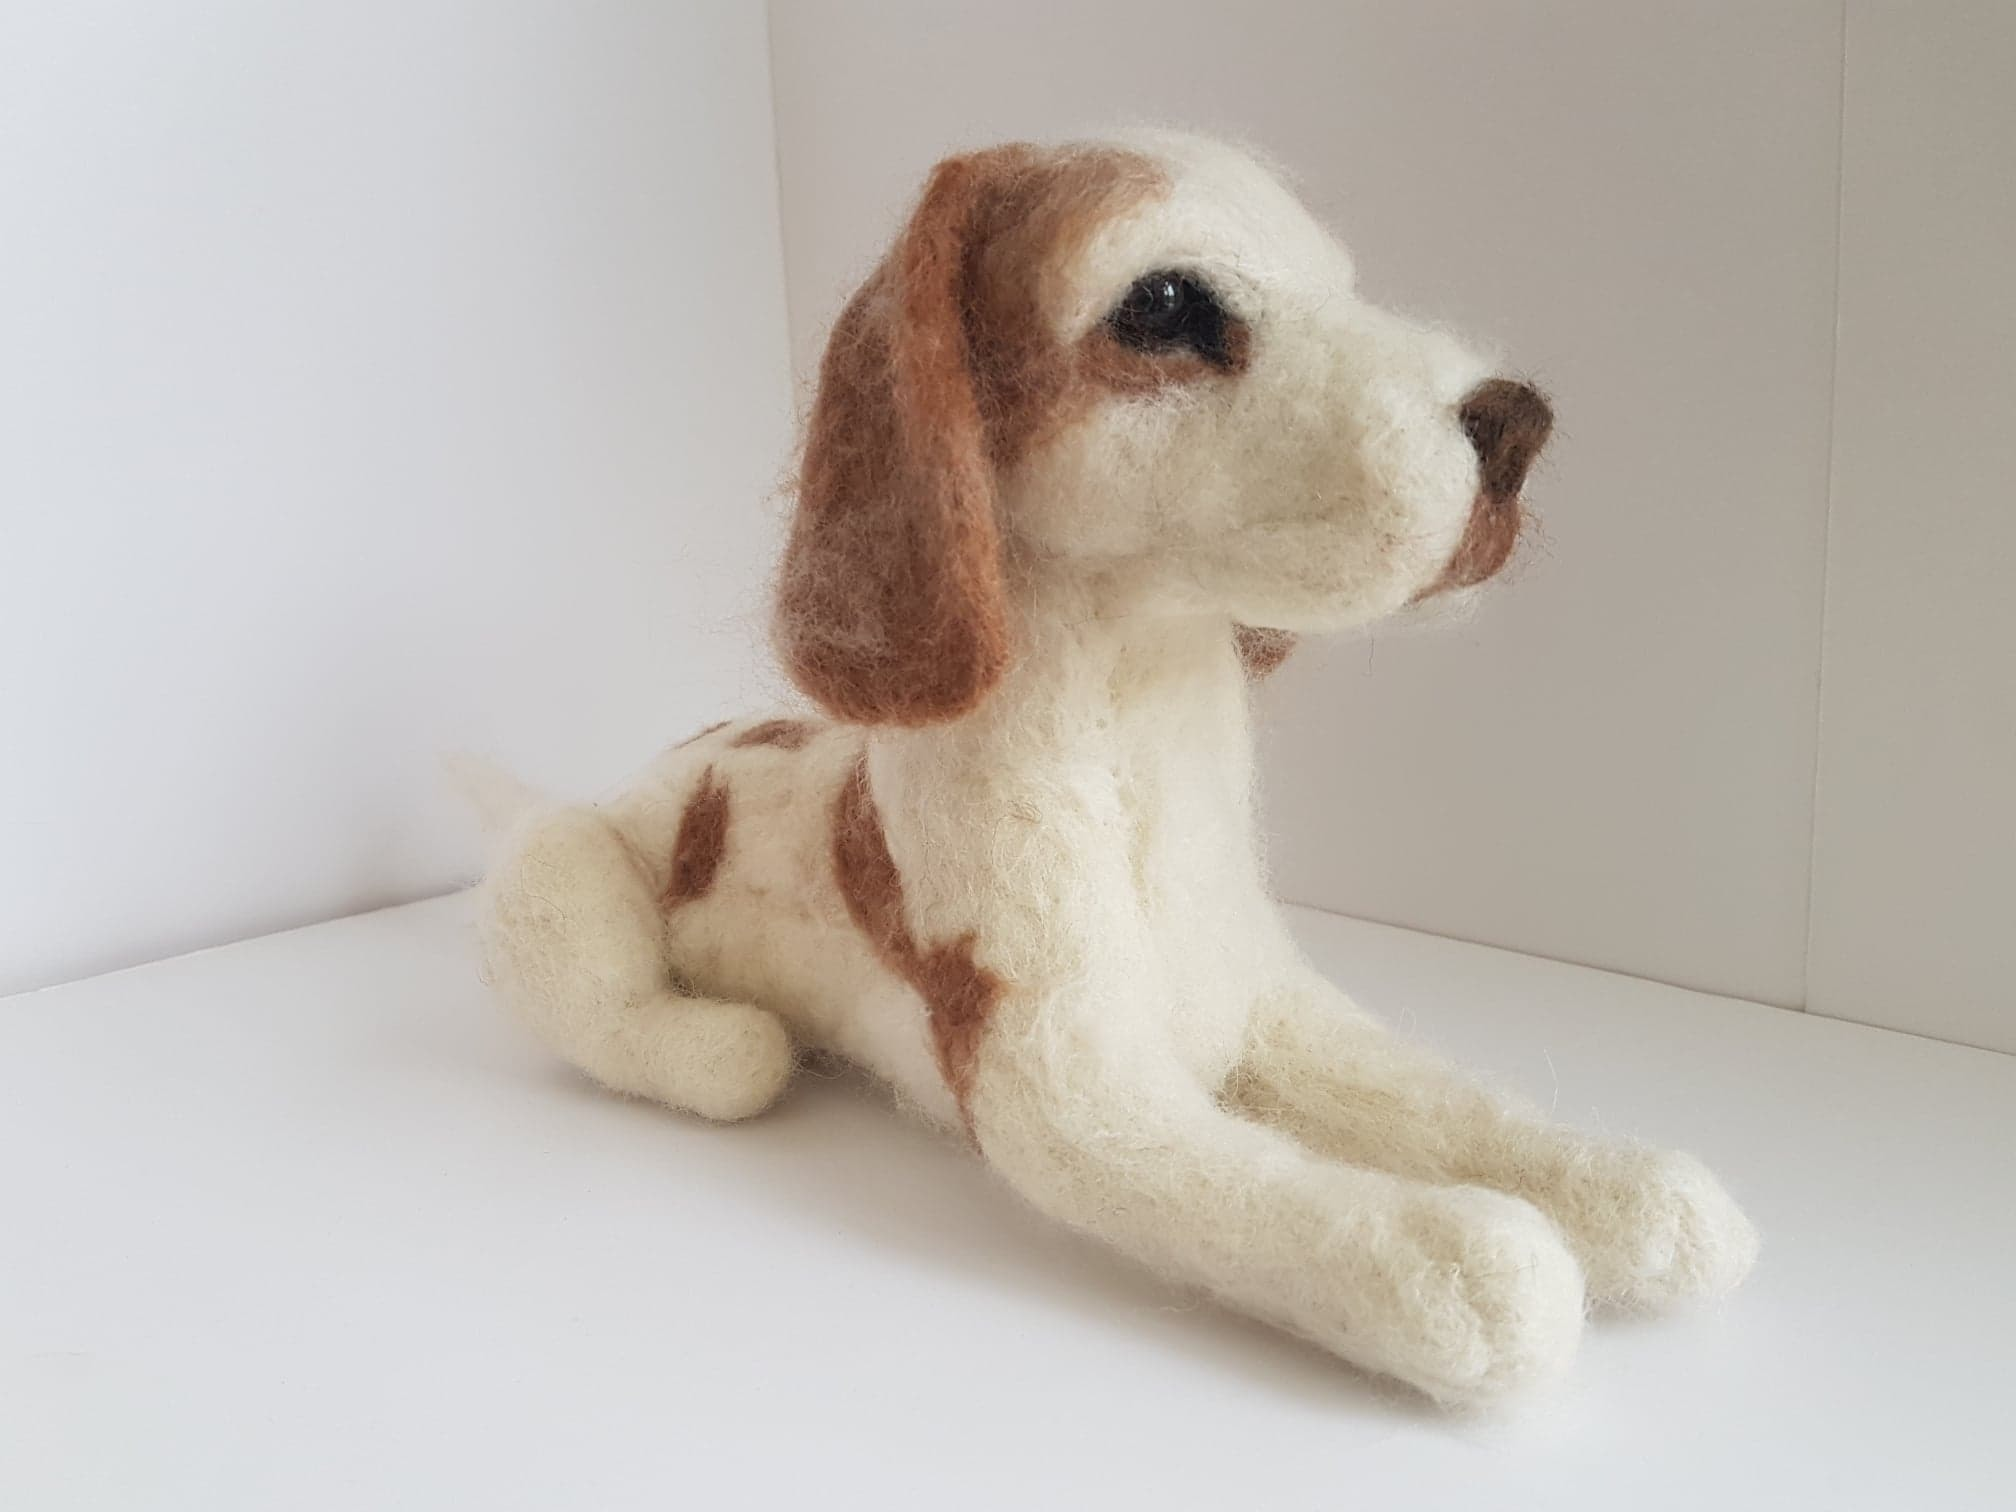 Bauwow - Your Social Petwork | Model made to look like the real pets